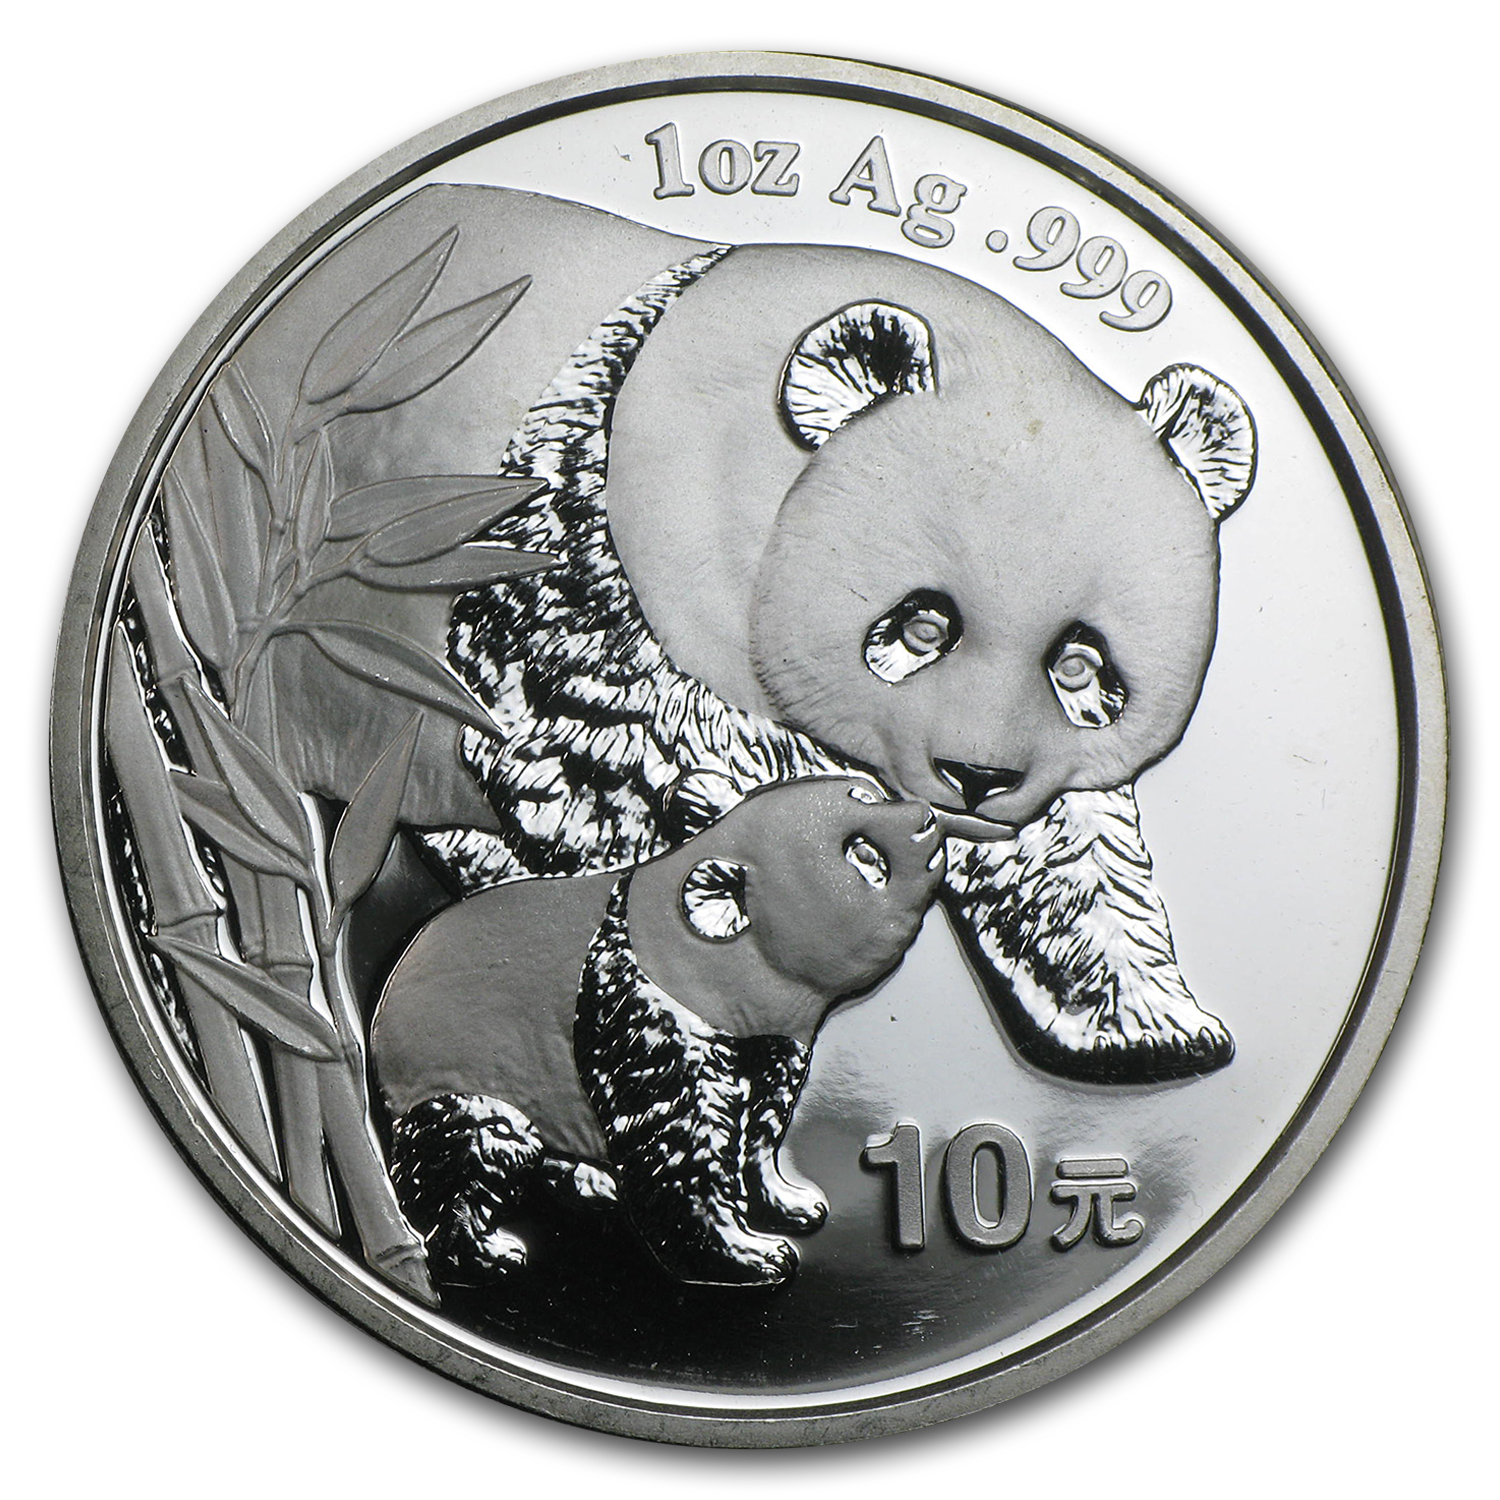 2004 Silver Chinese Pandas 1 oz - (NOT in Plastic)